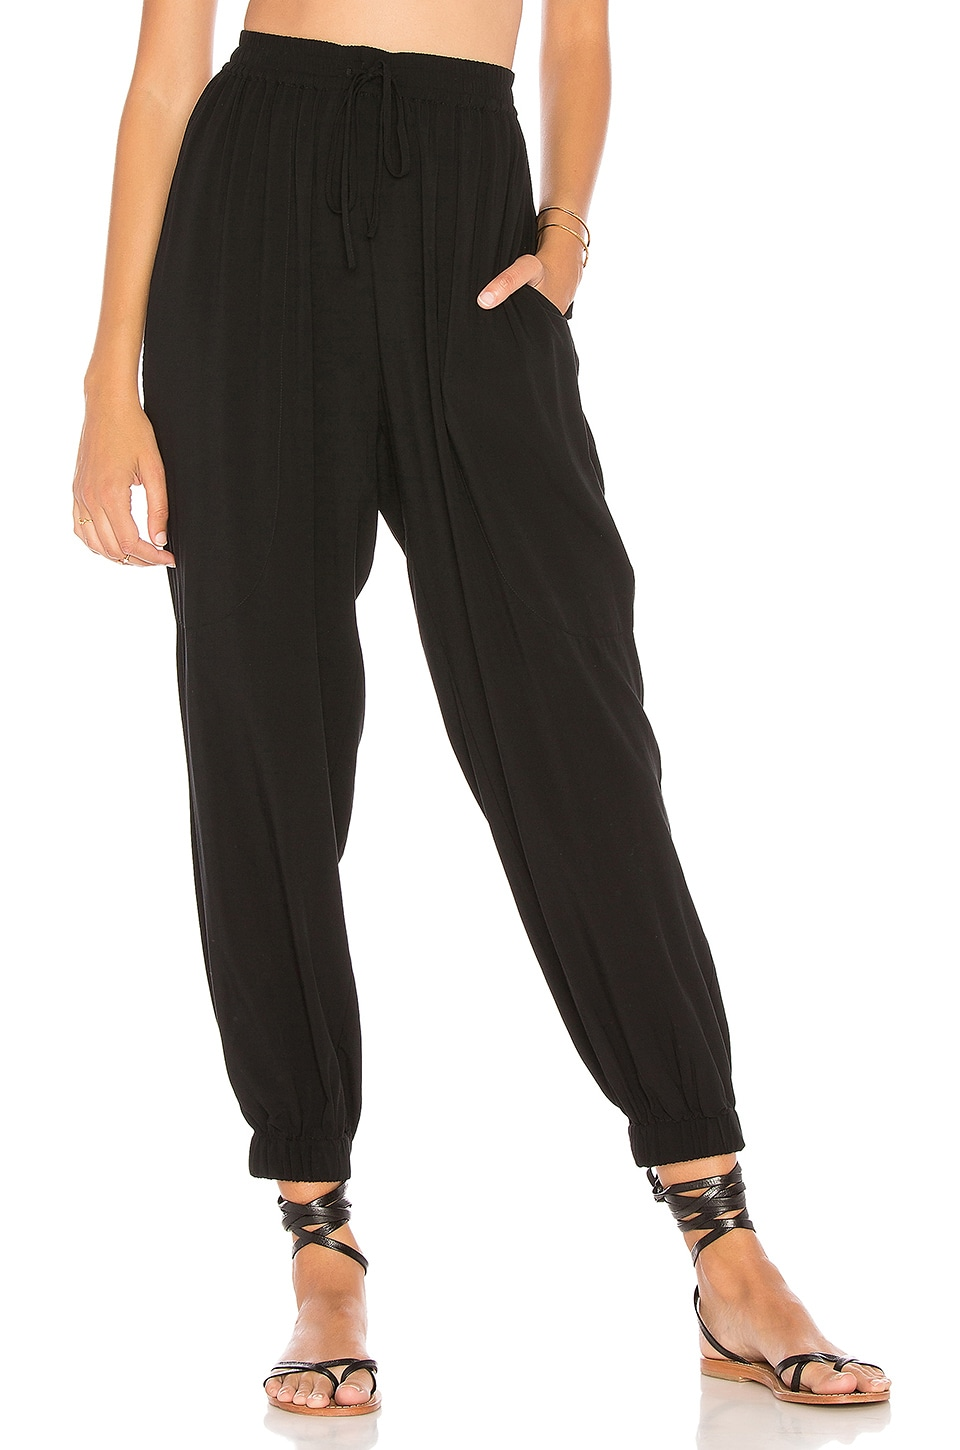 Voile Pant